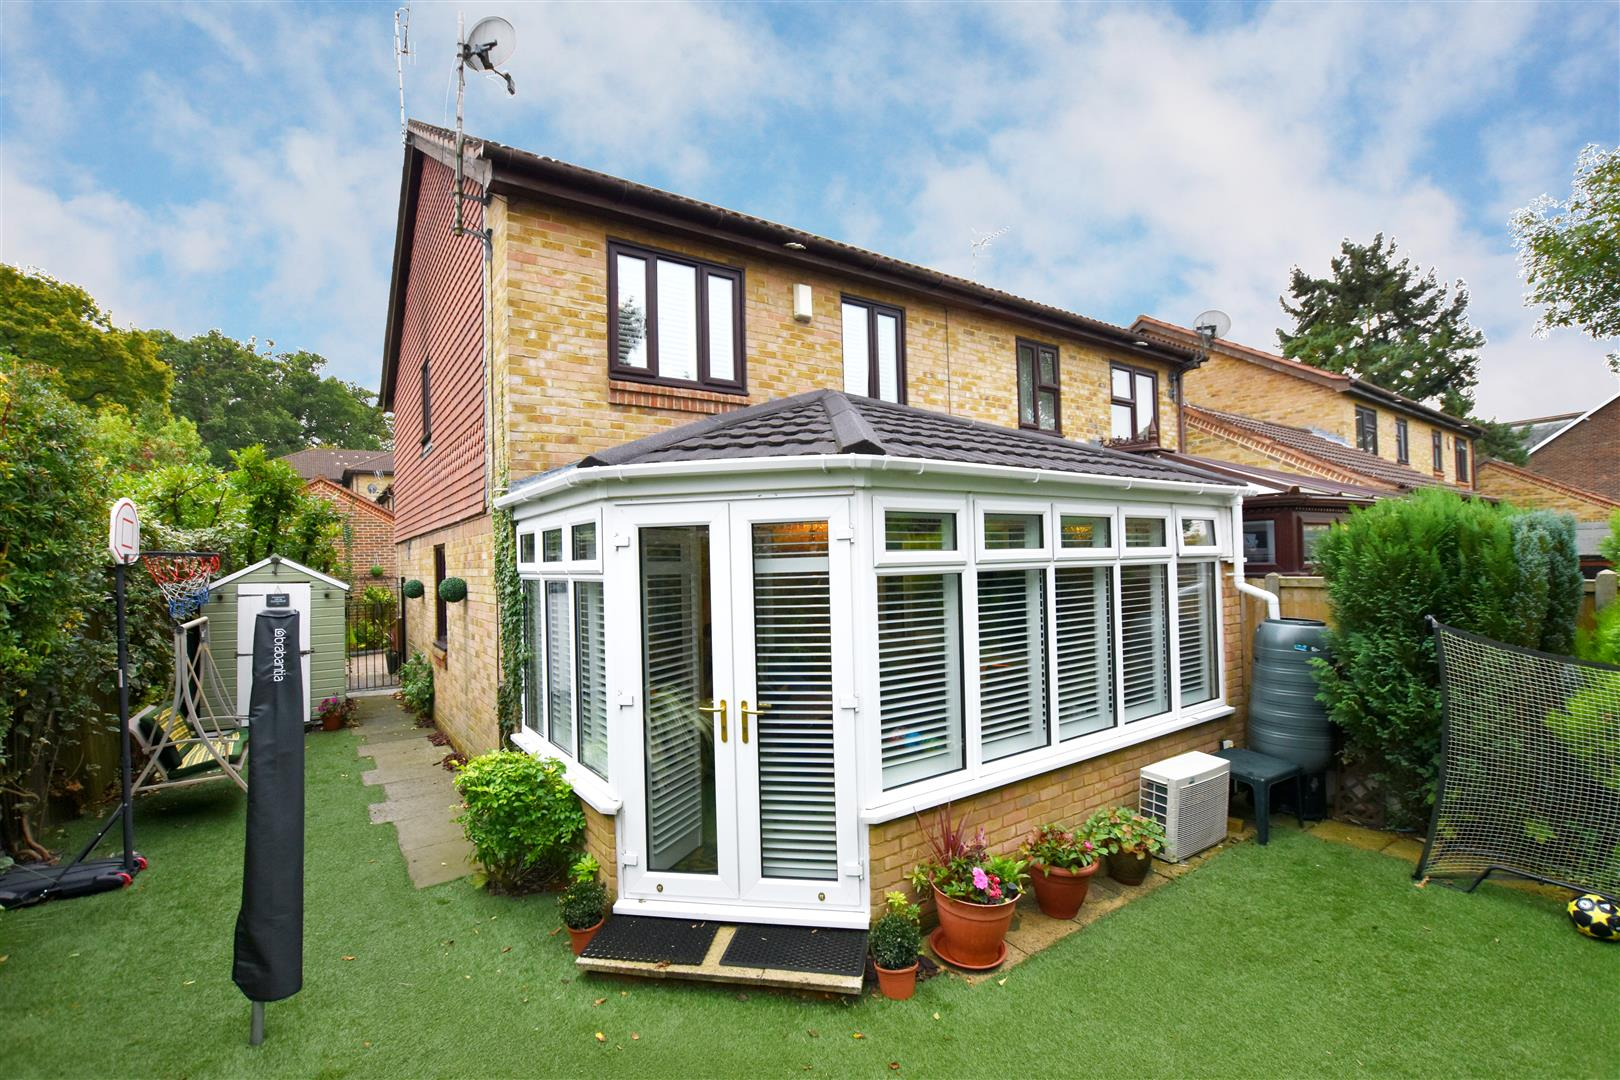 3 Bedrooms House for sale in Alpine Road, Redhill